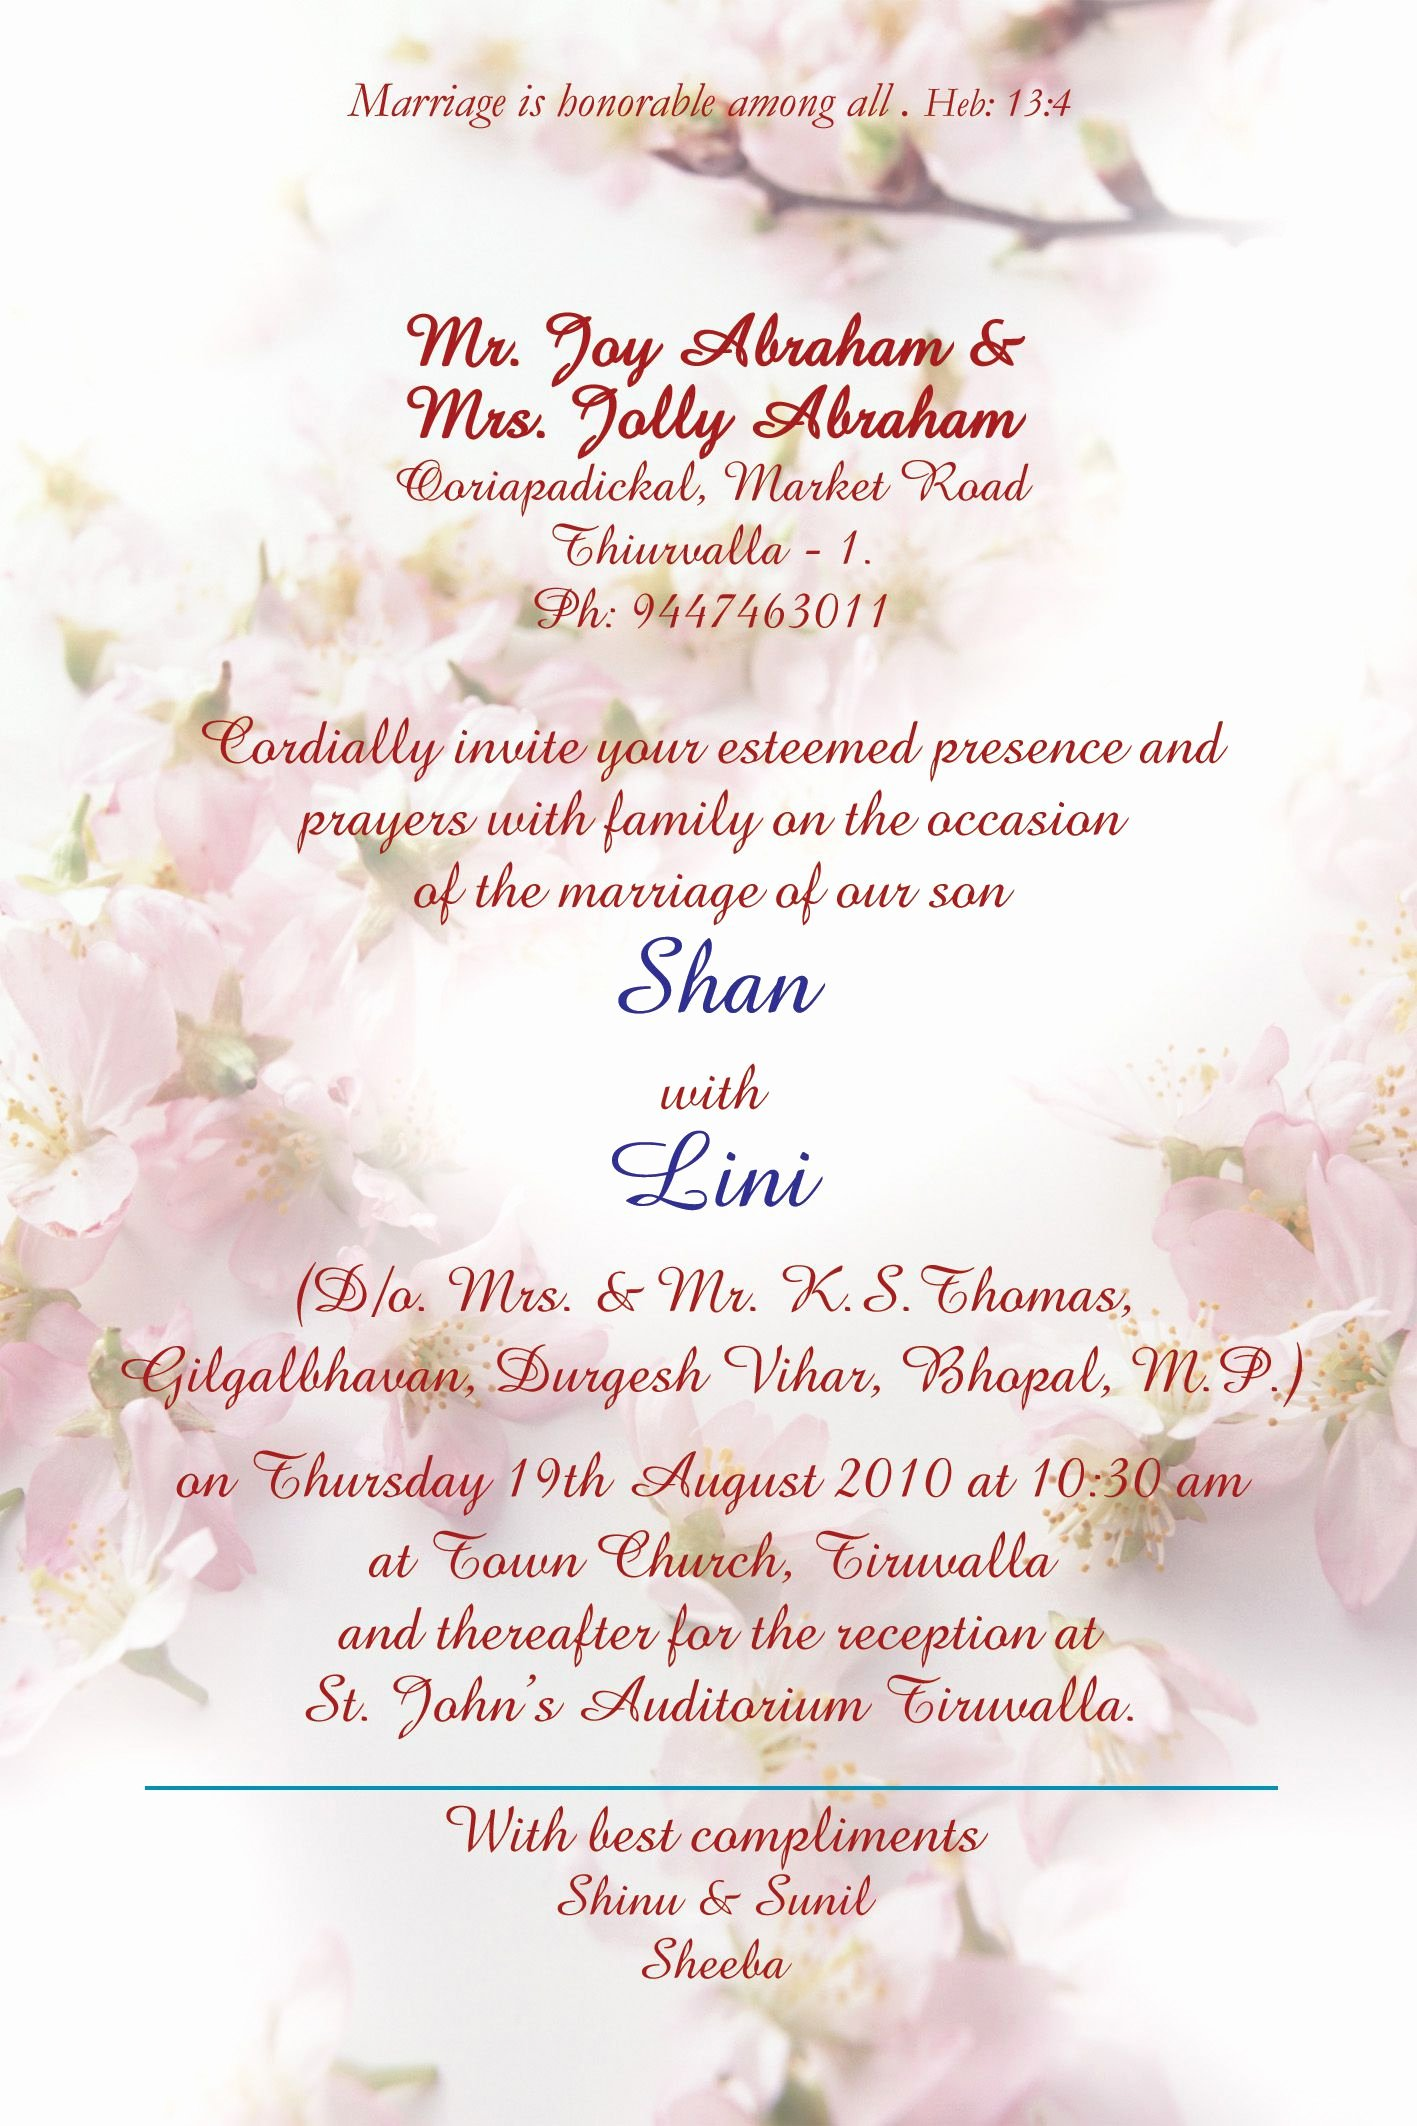 Word Template for Invitations Inspirational Card Template Invitation Word Templates Free Card